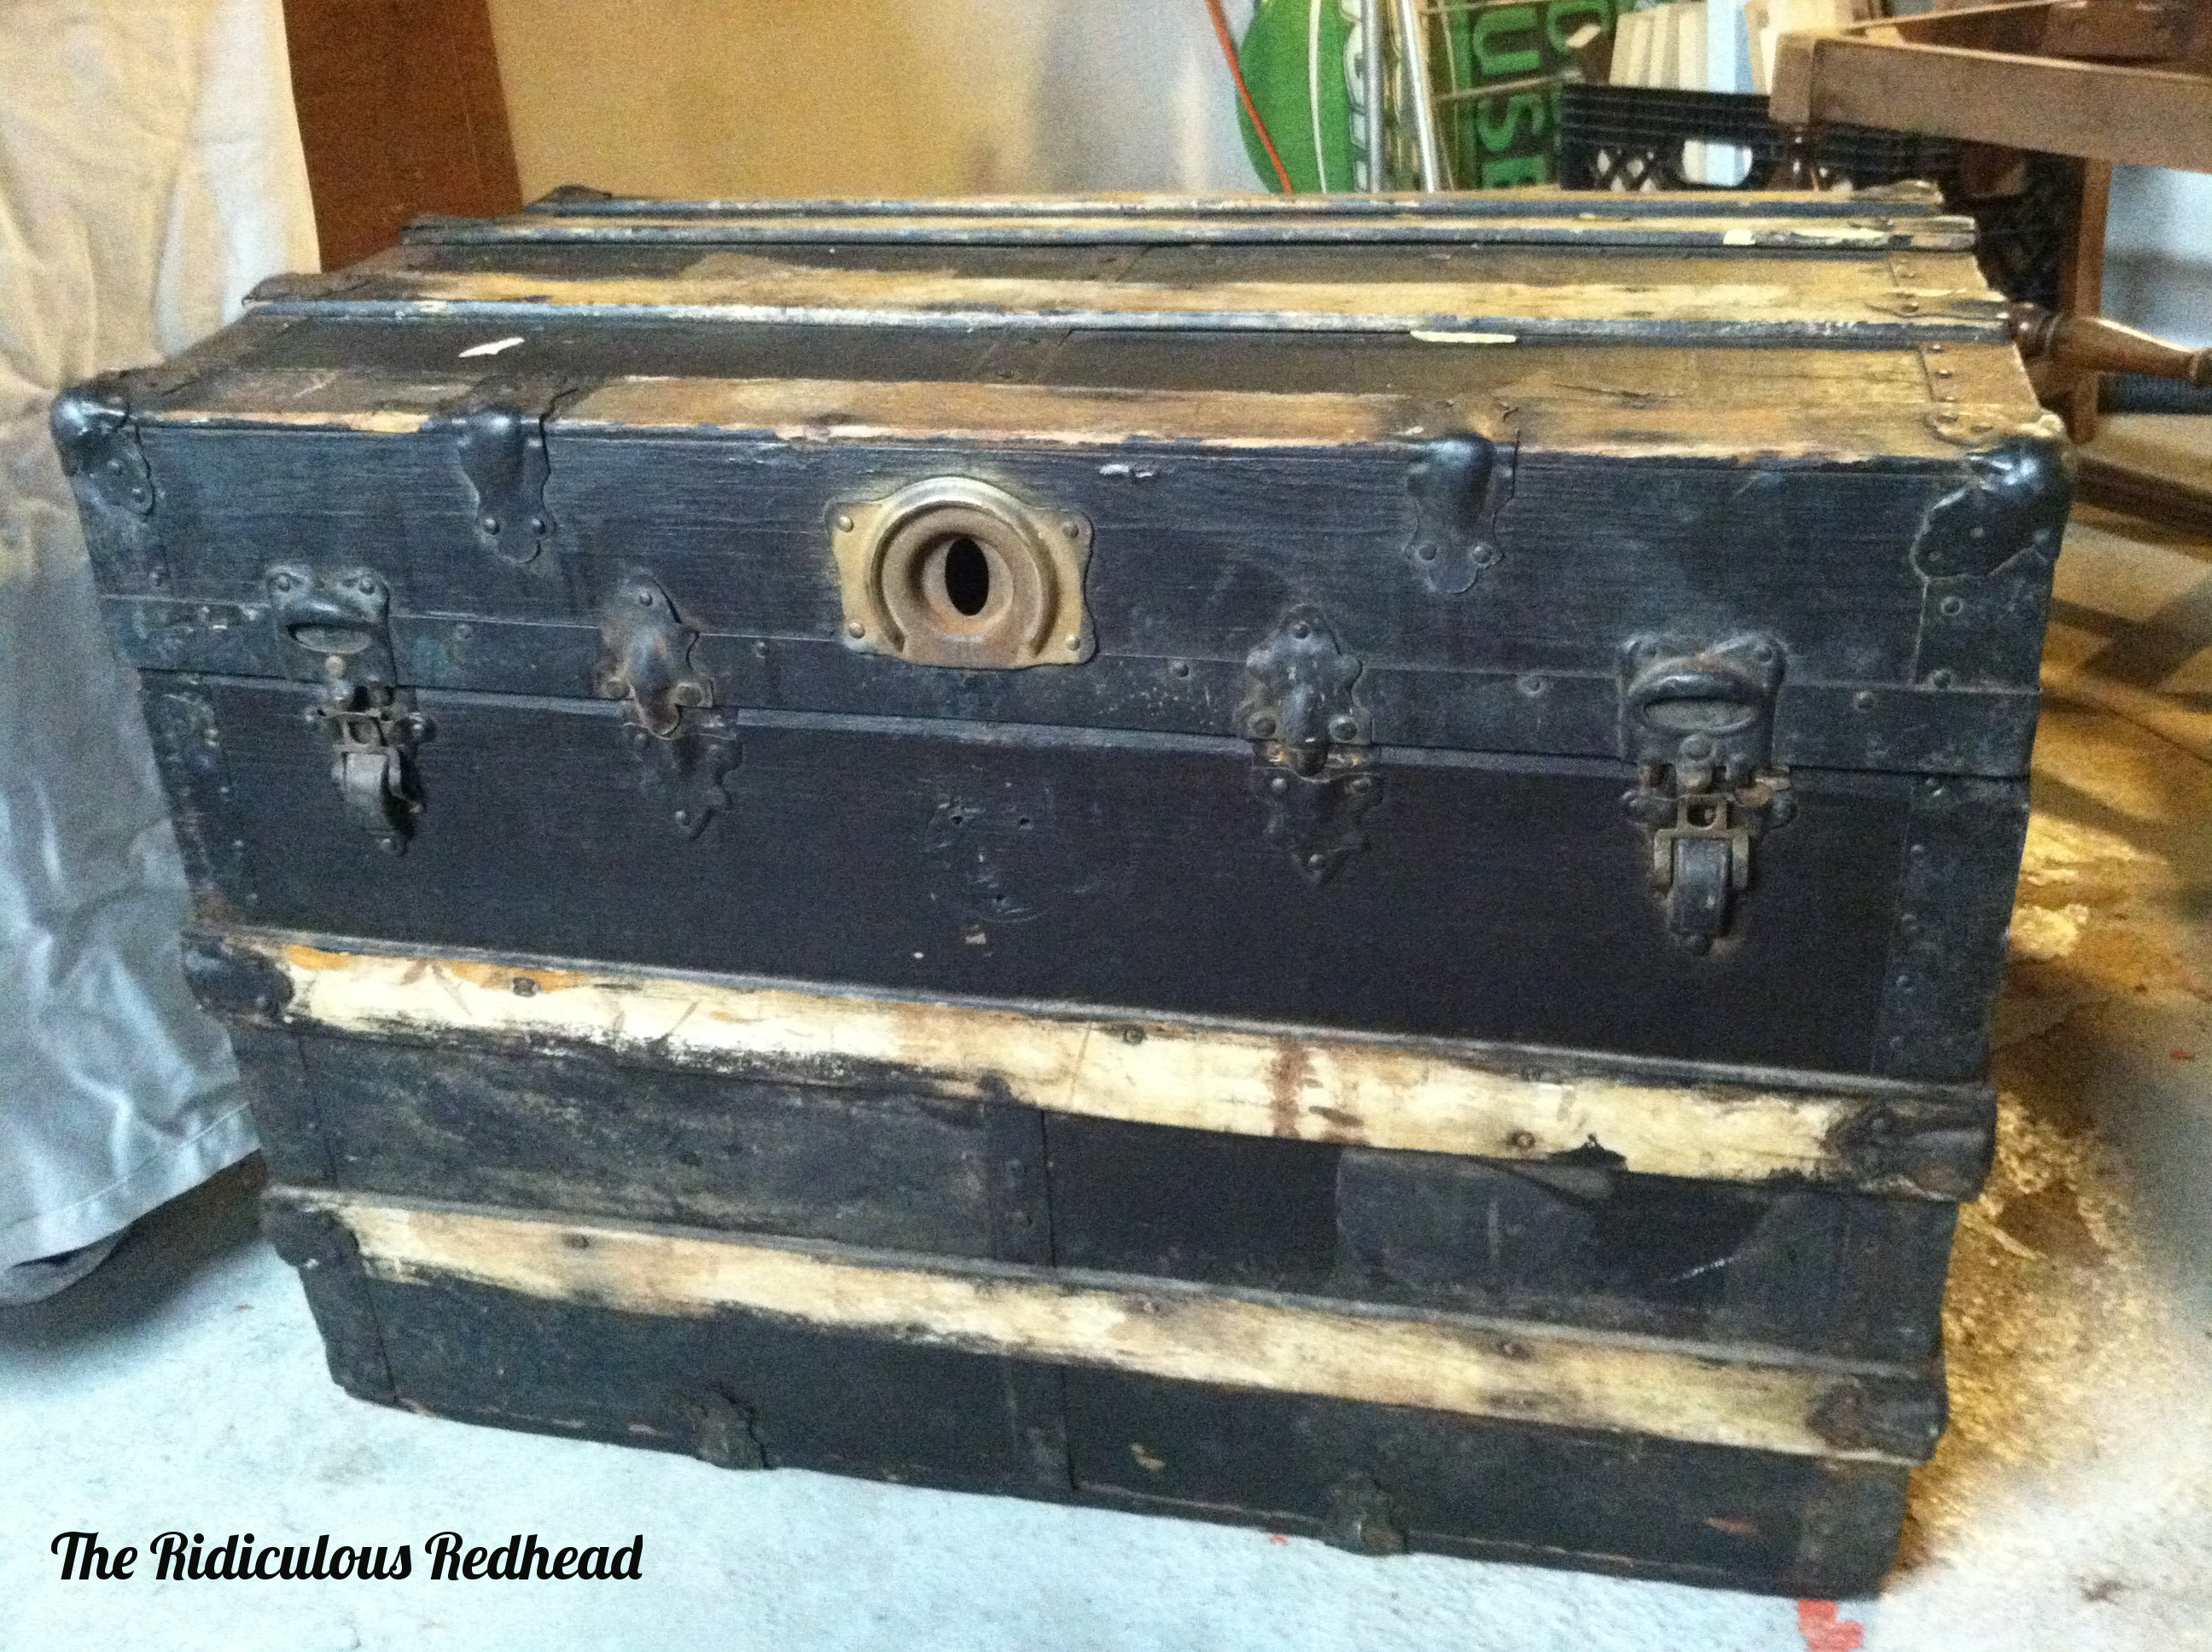 How do you restore a vintage steamer trunk?